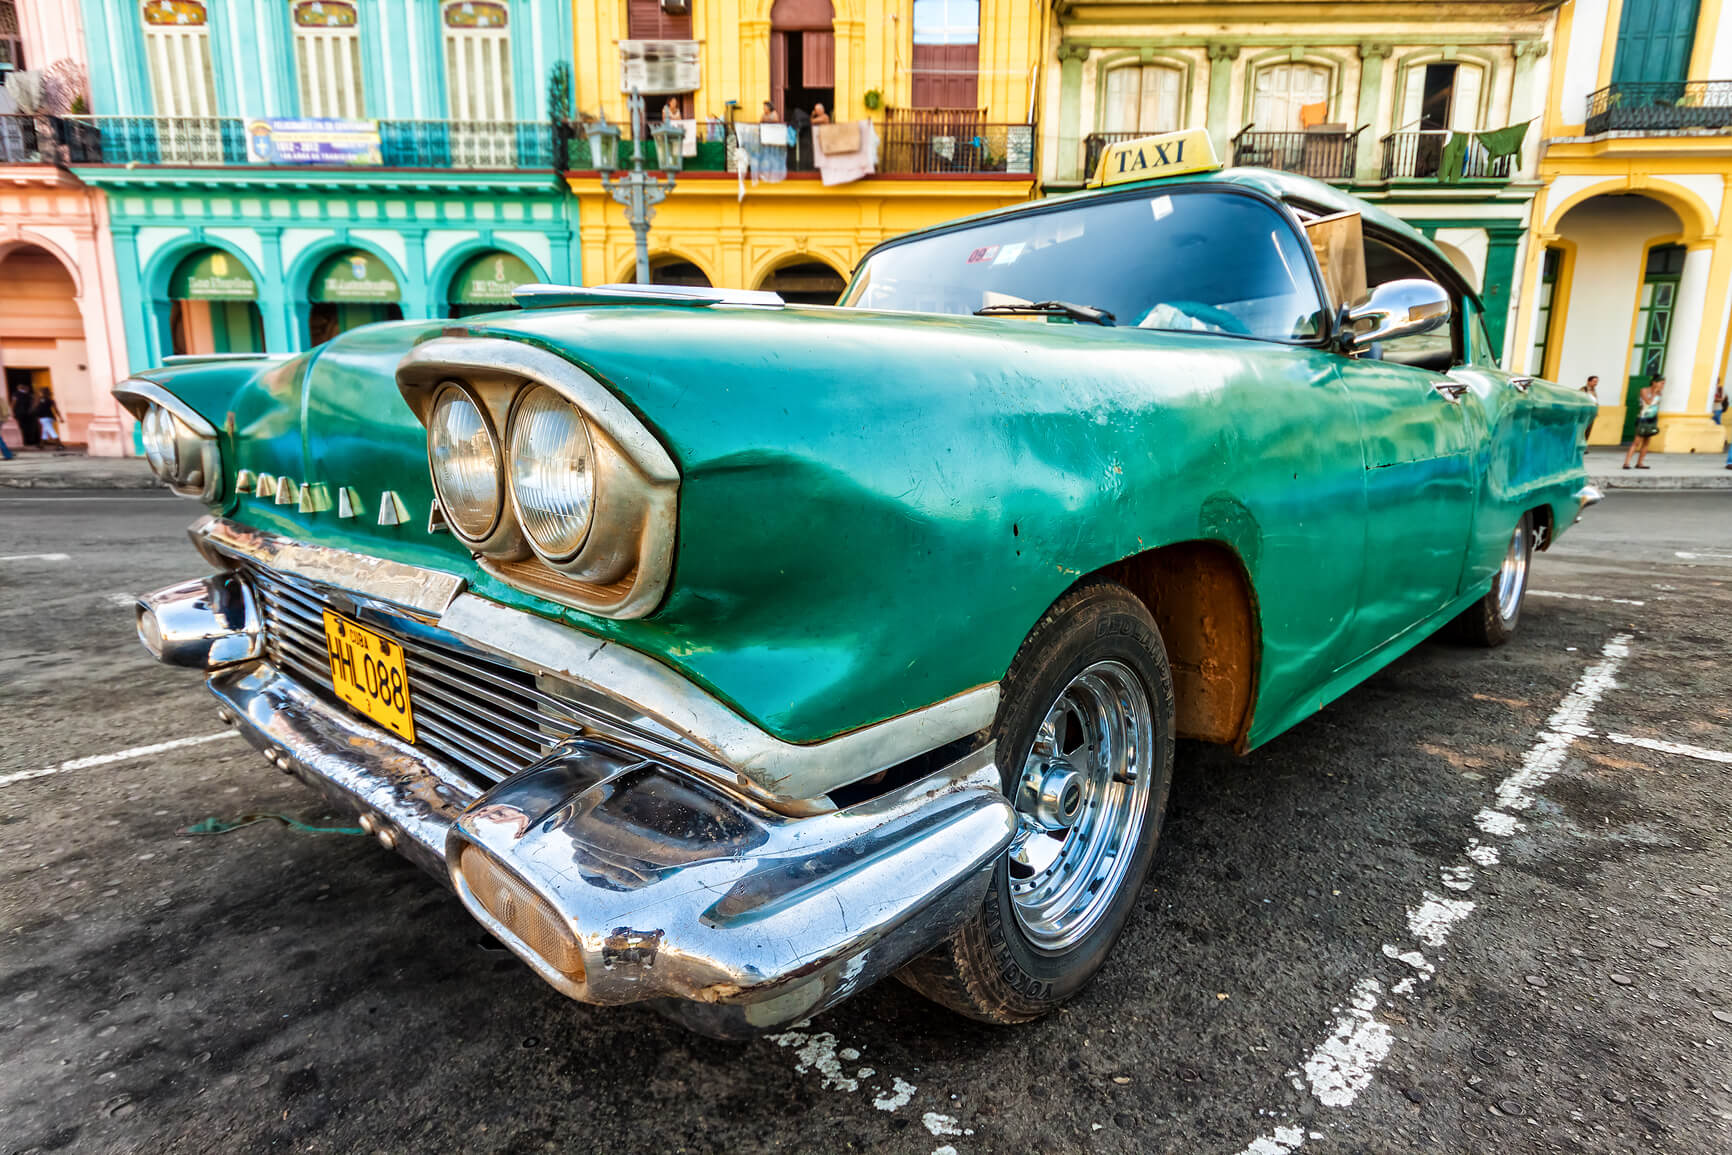 SUMMER: New York to Havana, Cuba for only $284 roundtrip